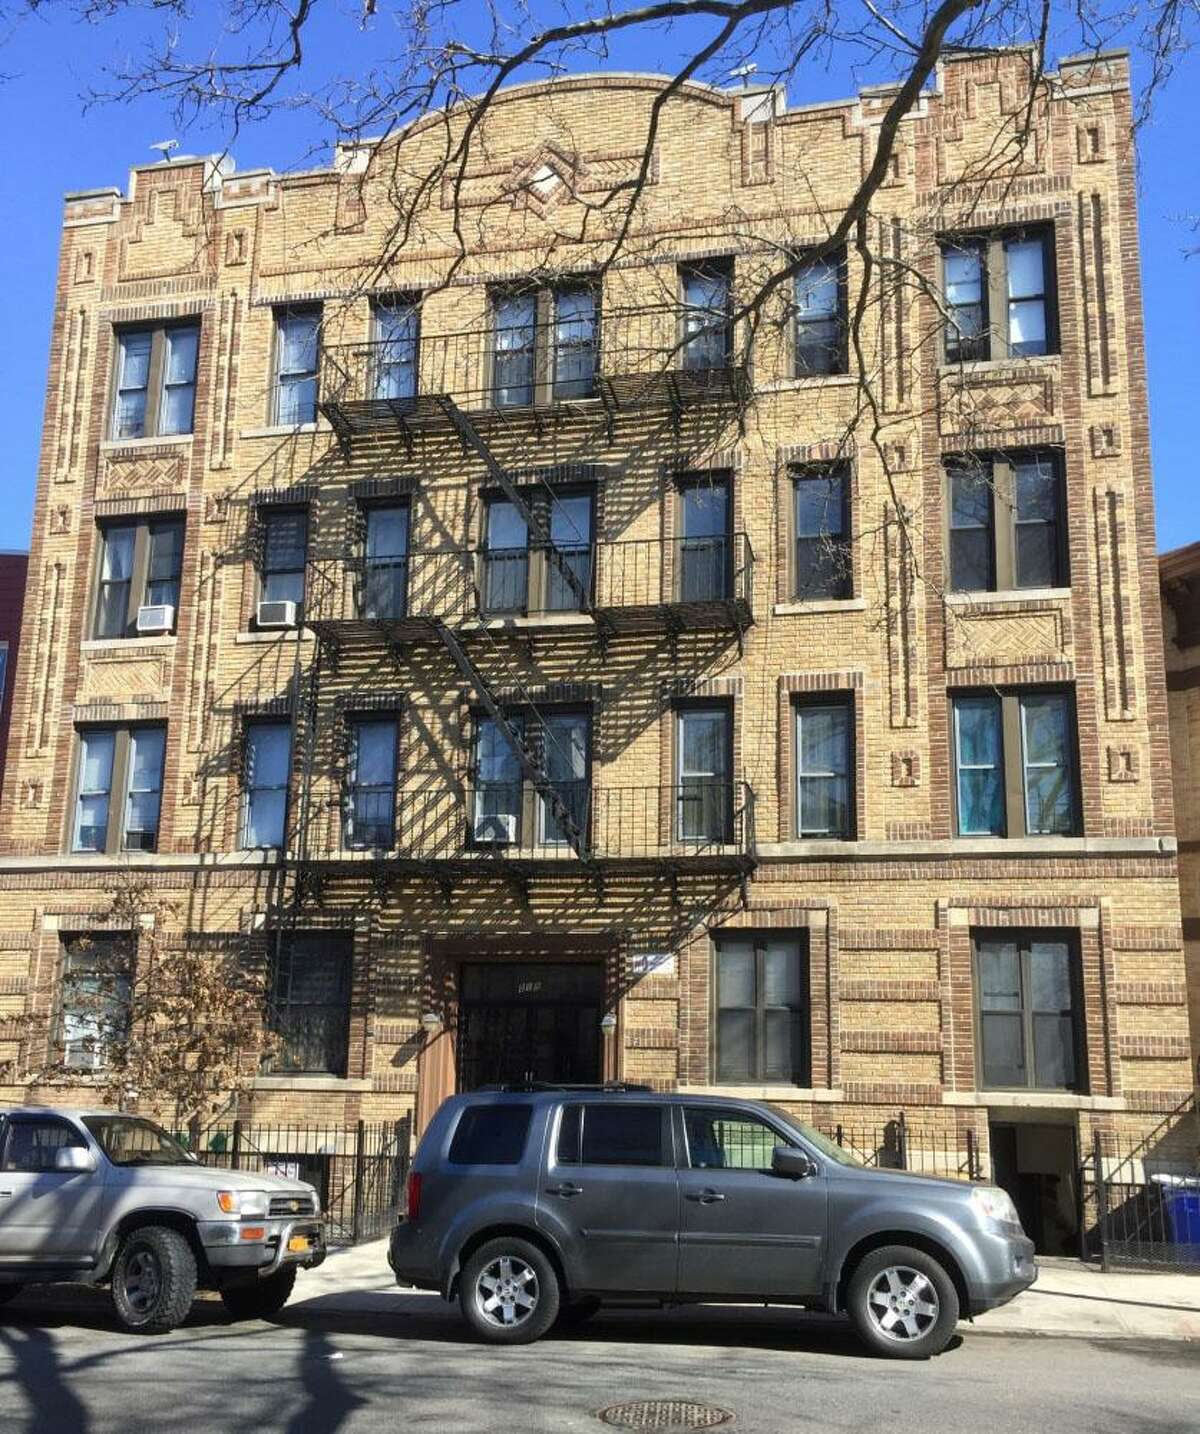 In 2017, Stamford-based RiverOak Investment Corp. acquired for $5.8 million this 23-apartment building at 215 33rd St., in the Greenwood Heights section of Brooklyn, N.Y.